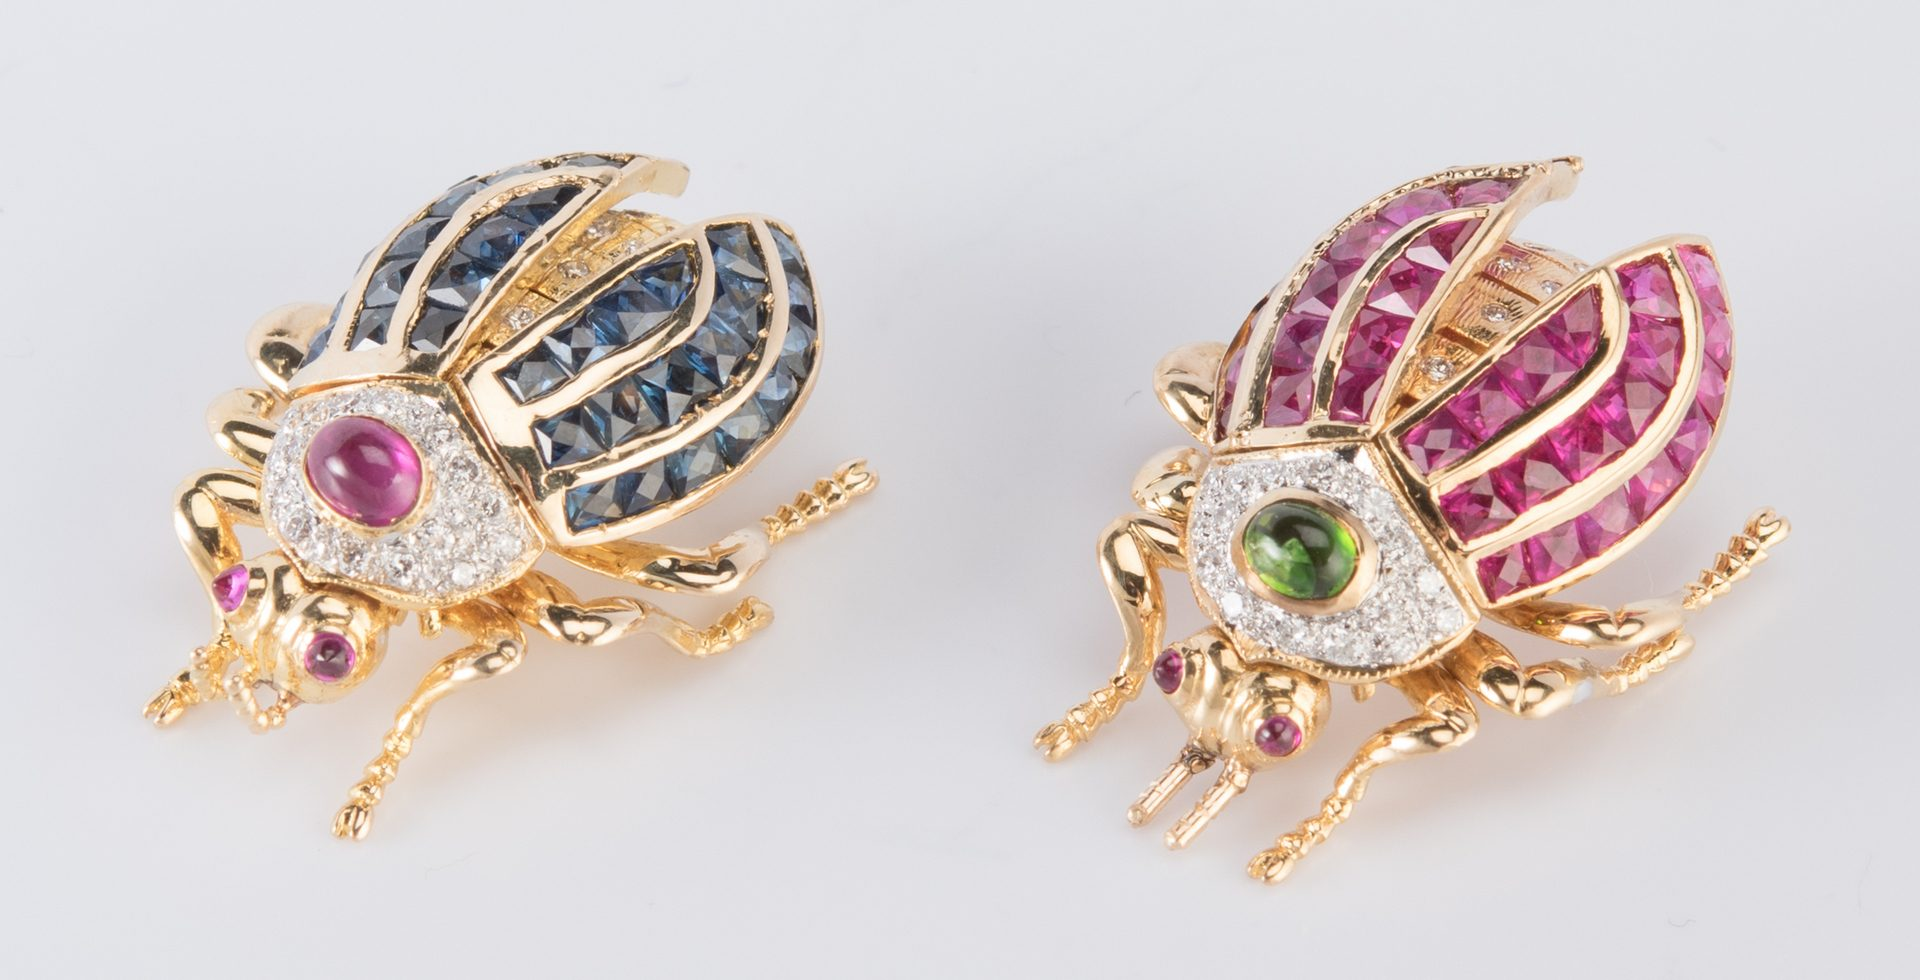 Lot 42: 2 Jeweled Beetle Movable Pins